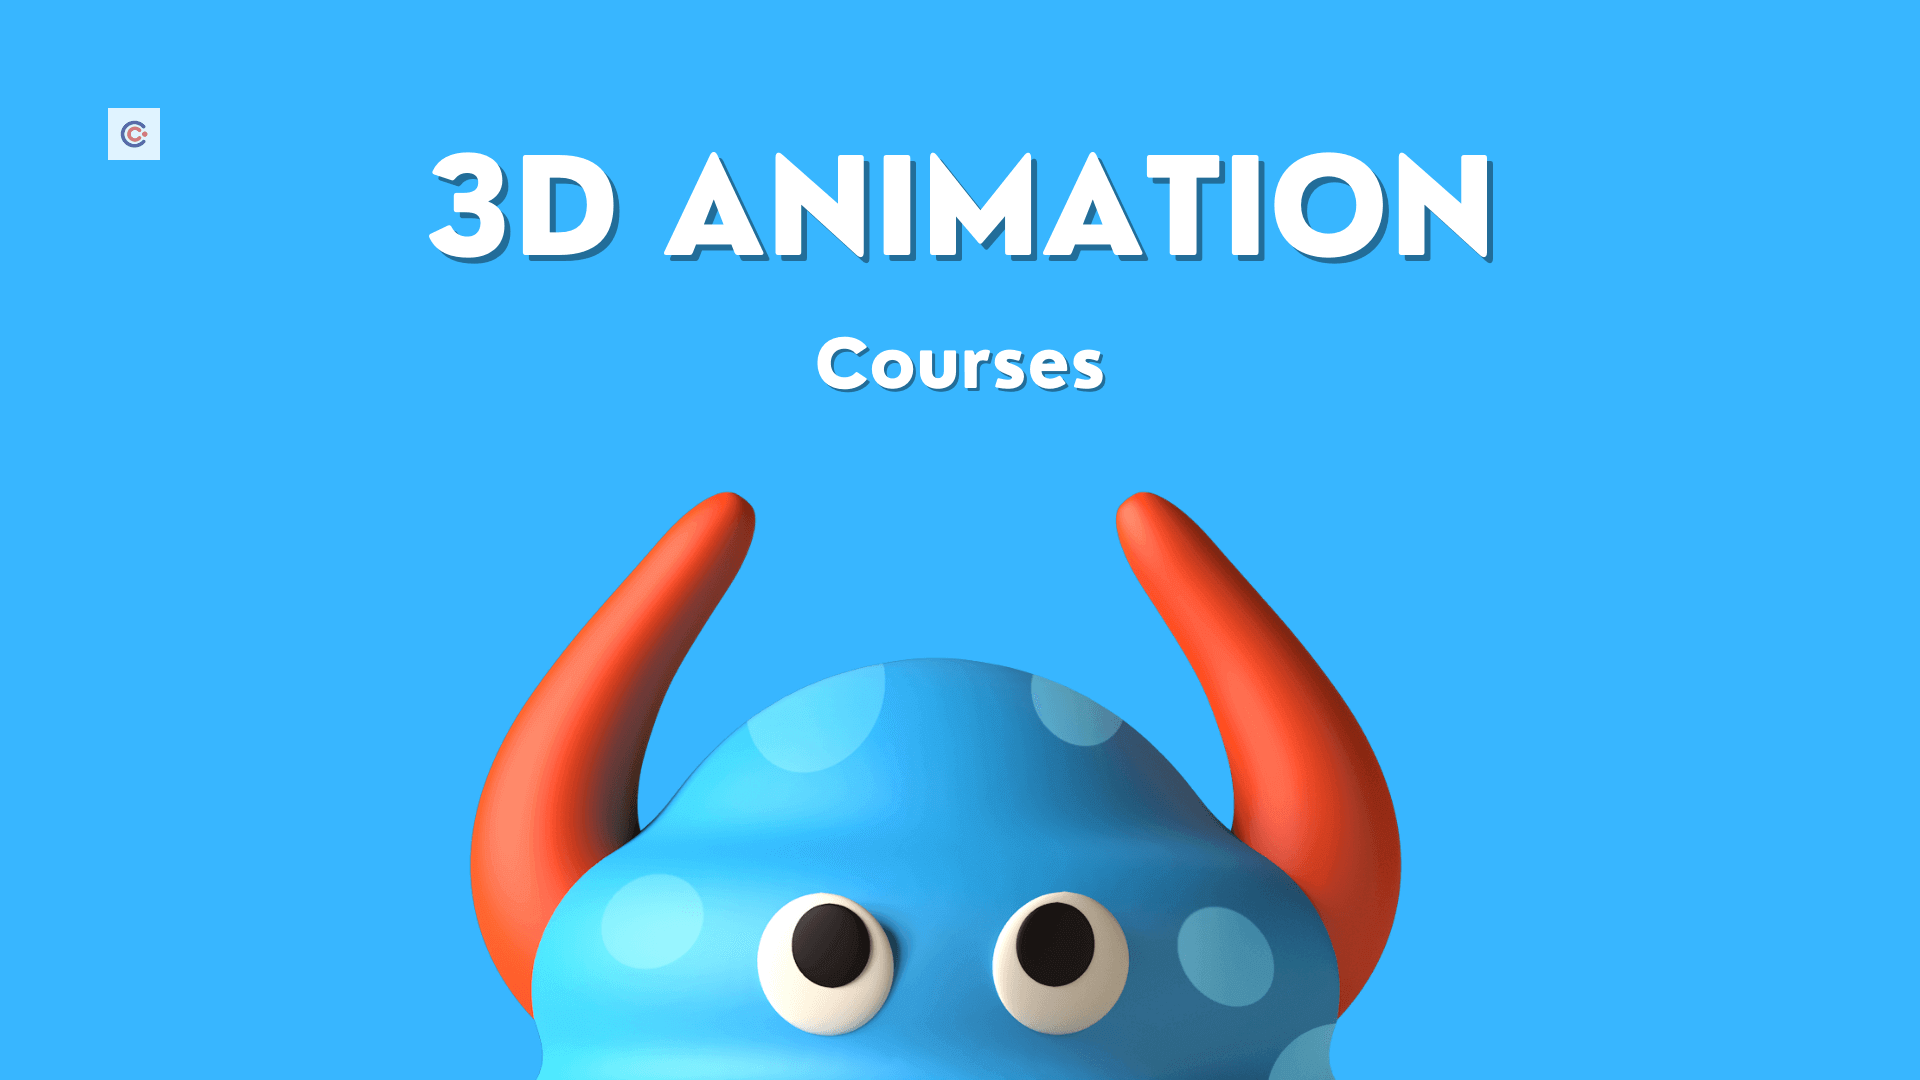 6 Best 3D Animation Courses - Learn 3D Animation Online